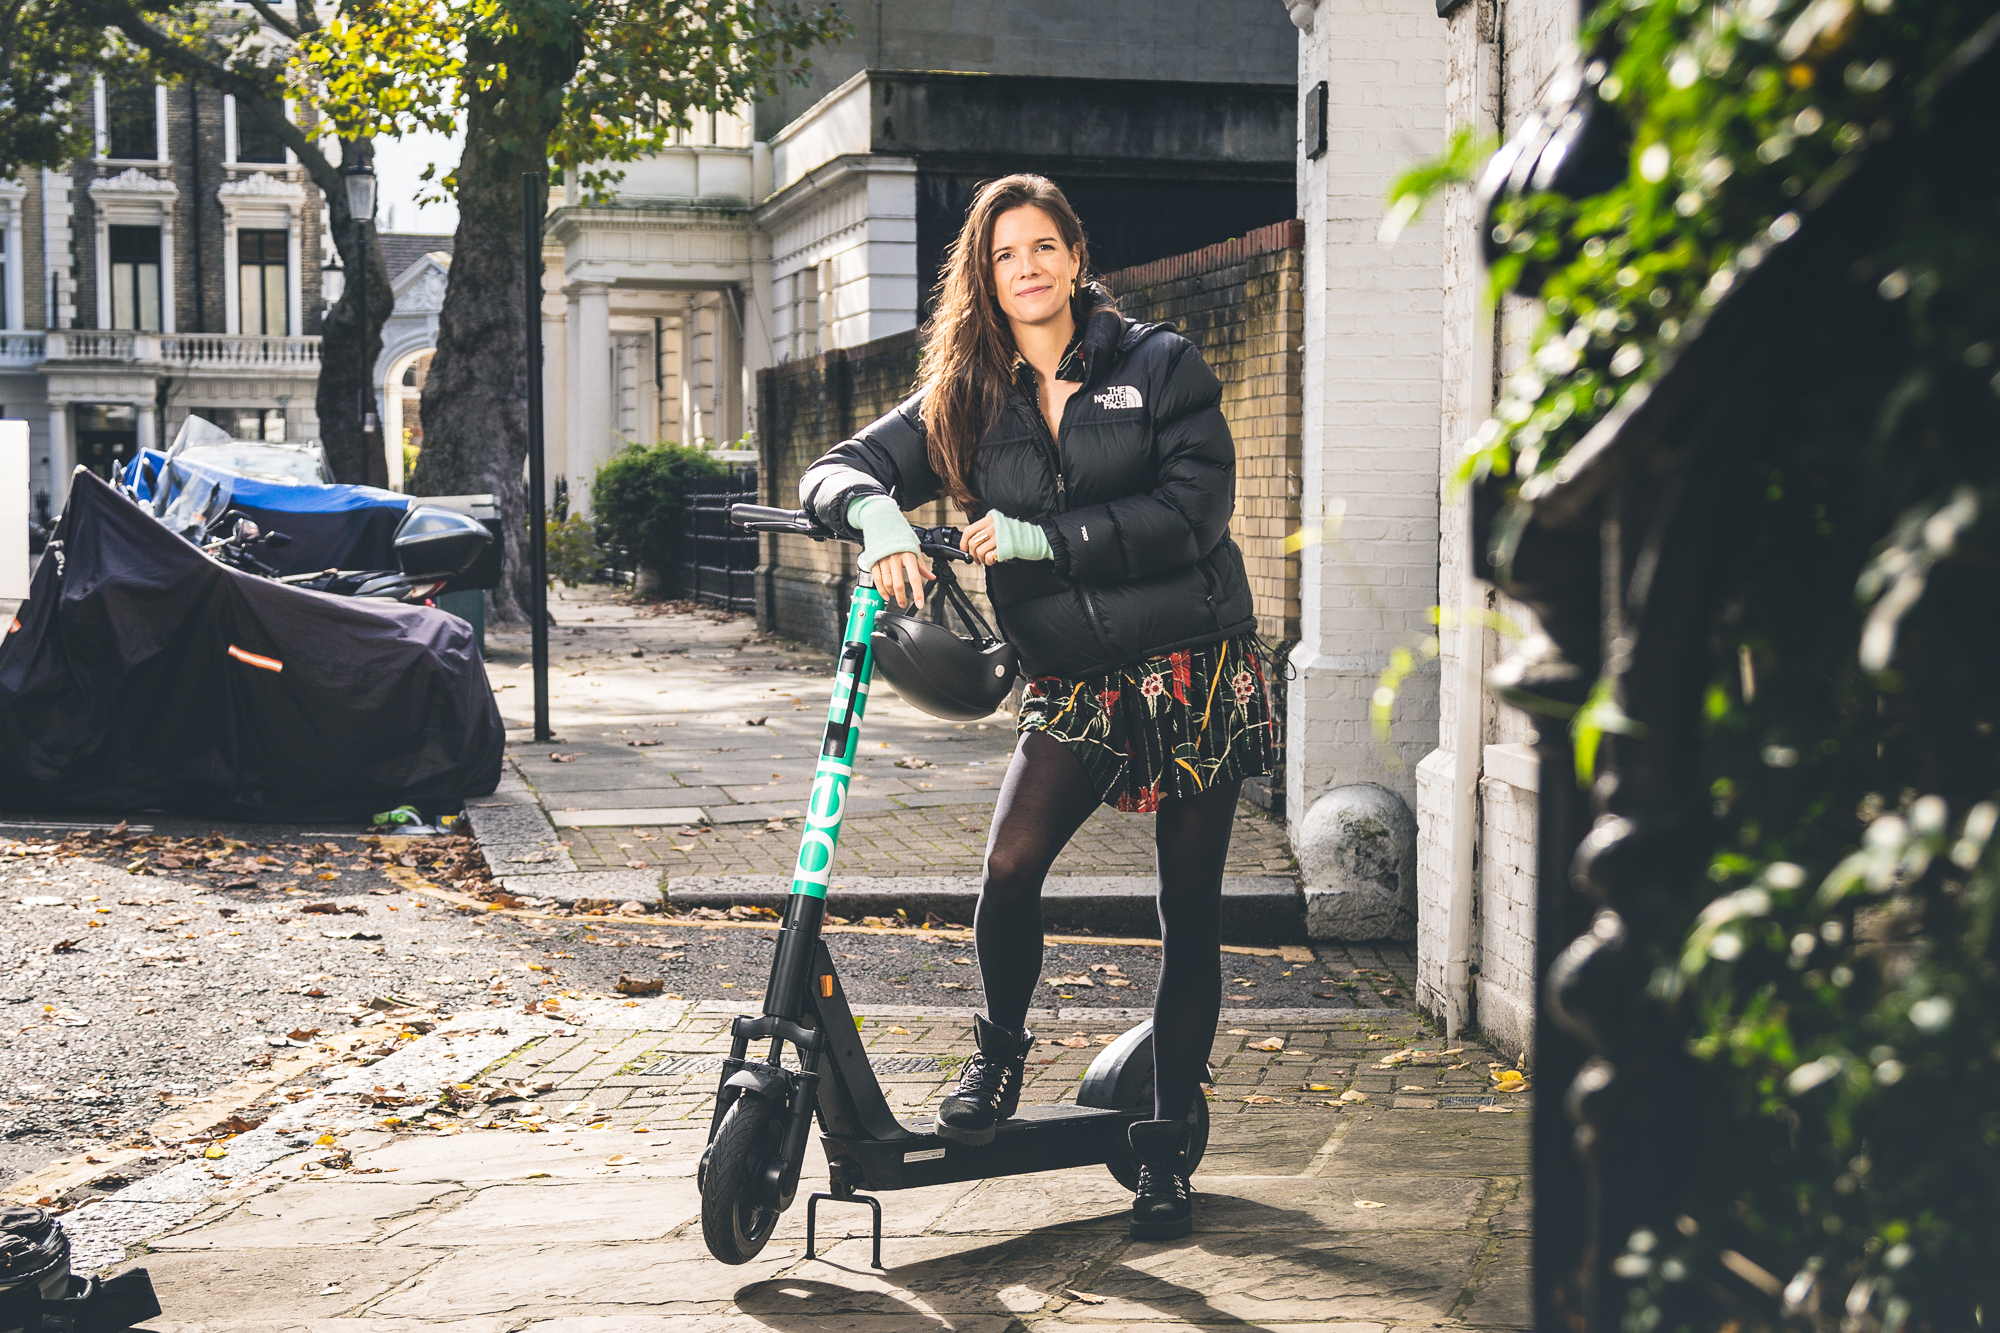 Beryl boss Emily Brooke believes e-scooters could be the 'gateway drug' for micromobility